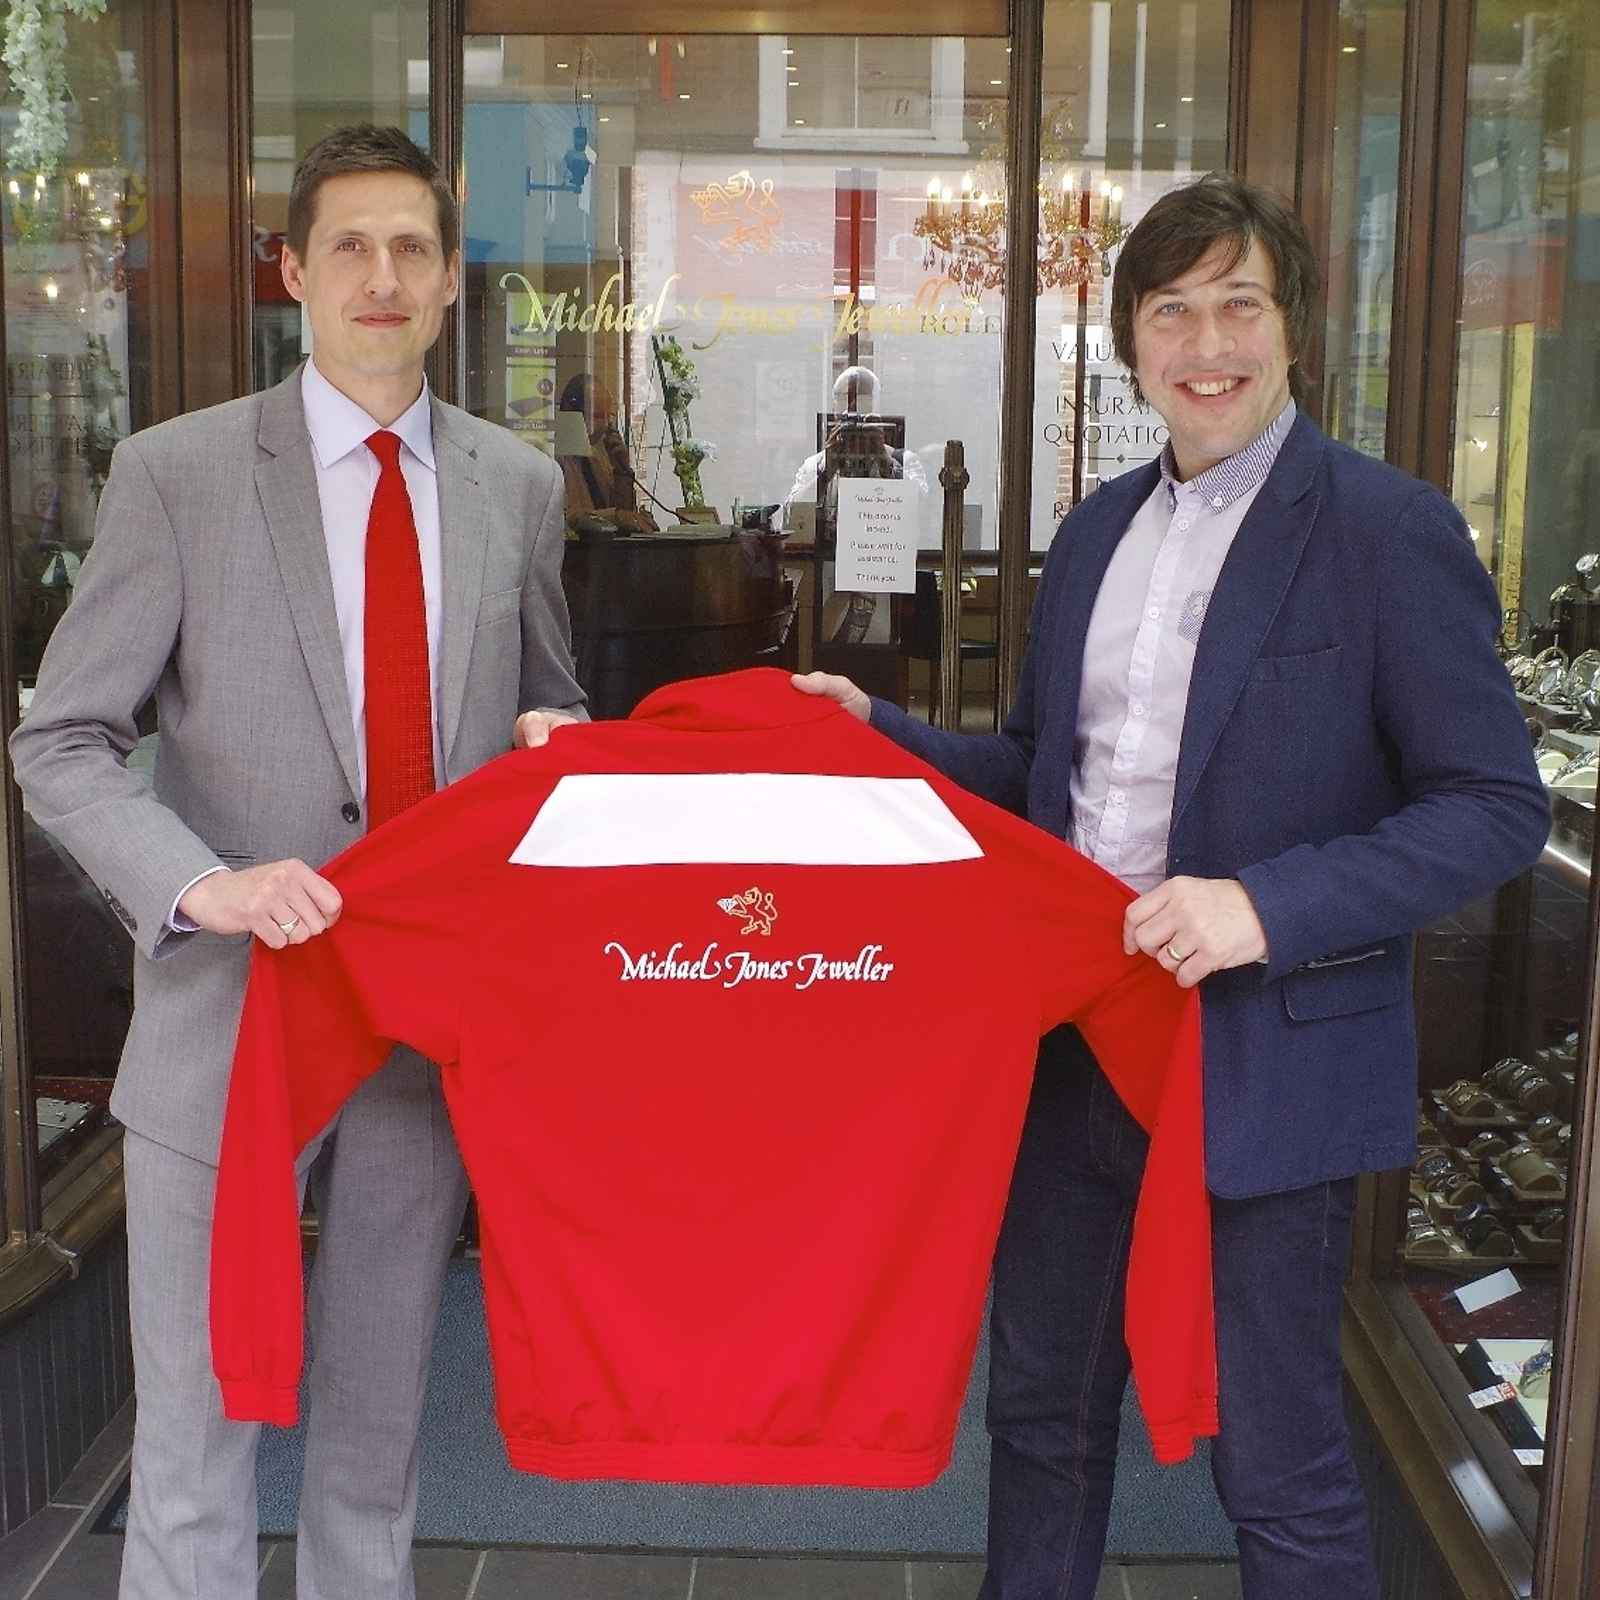 Michael Jones Jeweller continue to back United